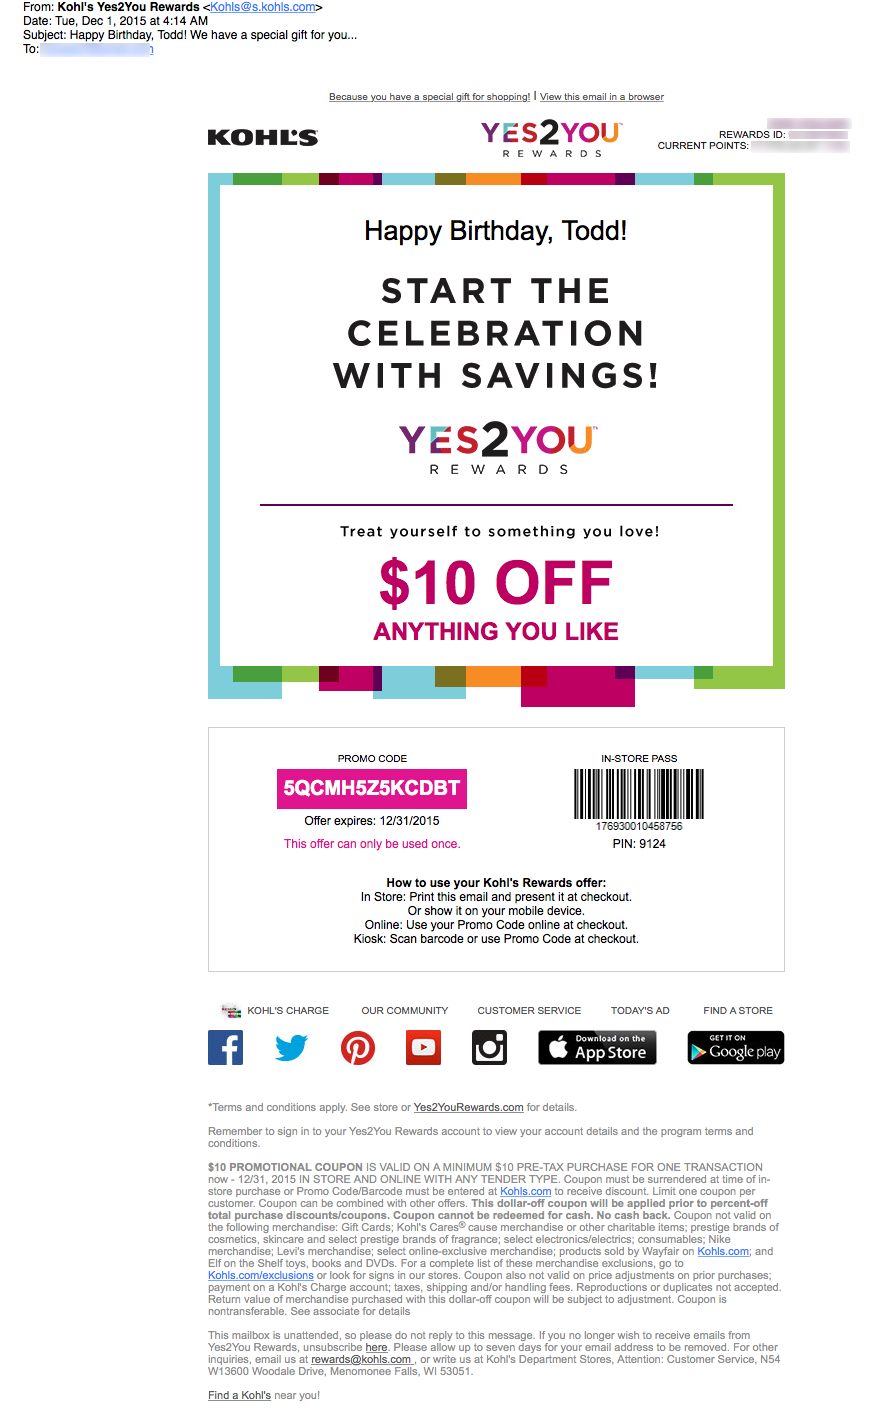 kohl's email review: is this birthday email something to celebrate